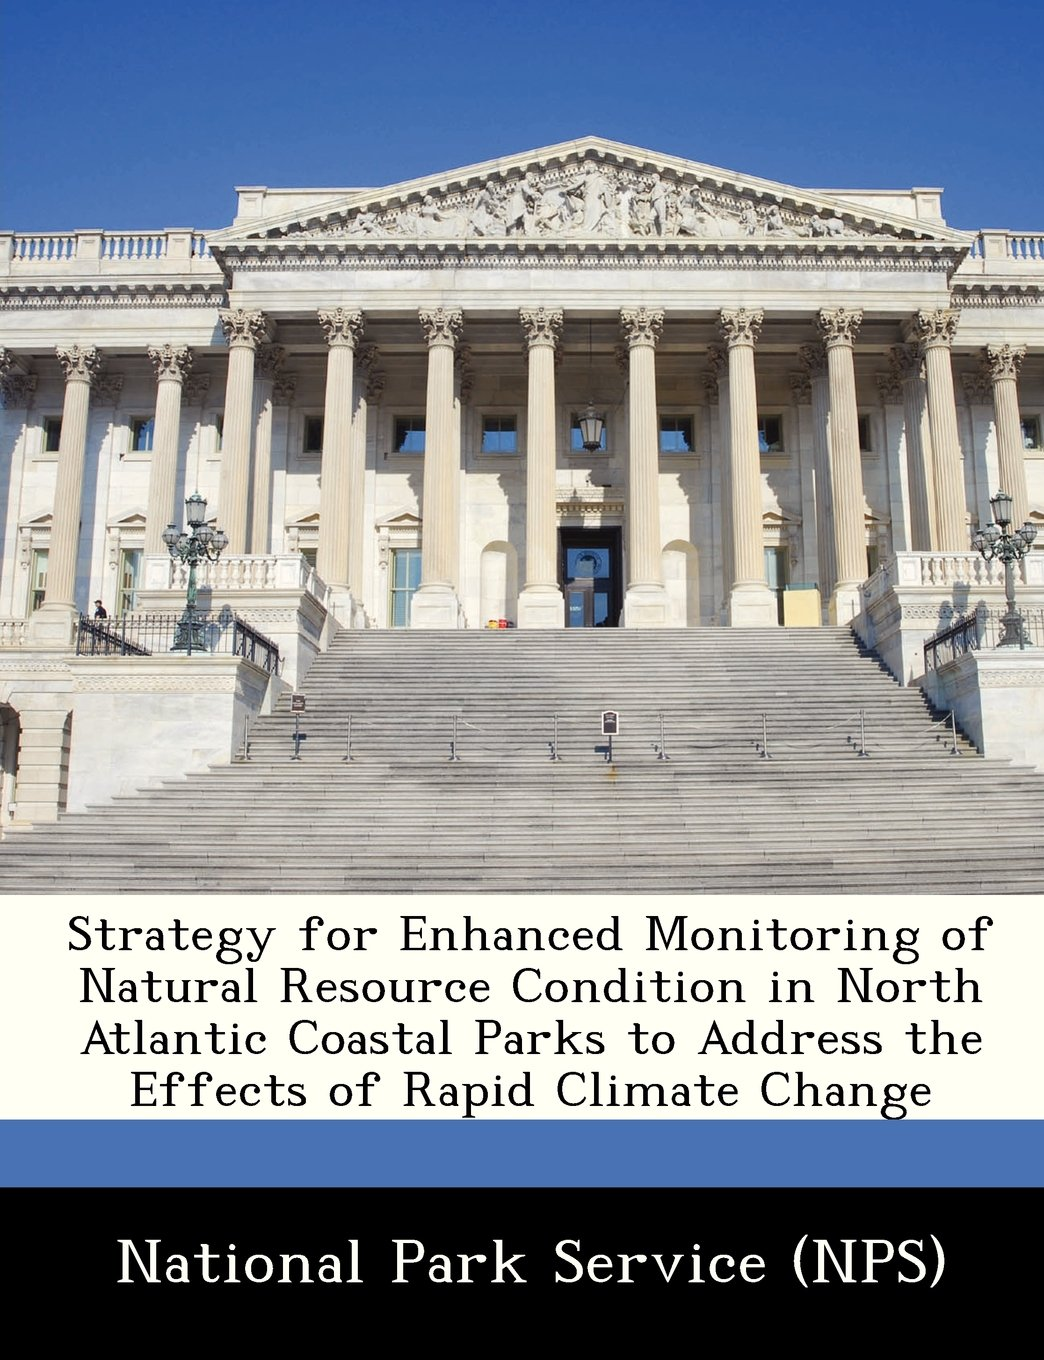 Strategy for Enhanced Monitoring of Natural Resource